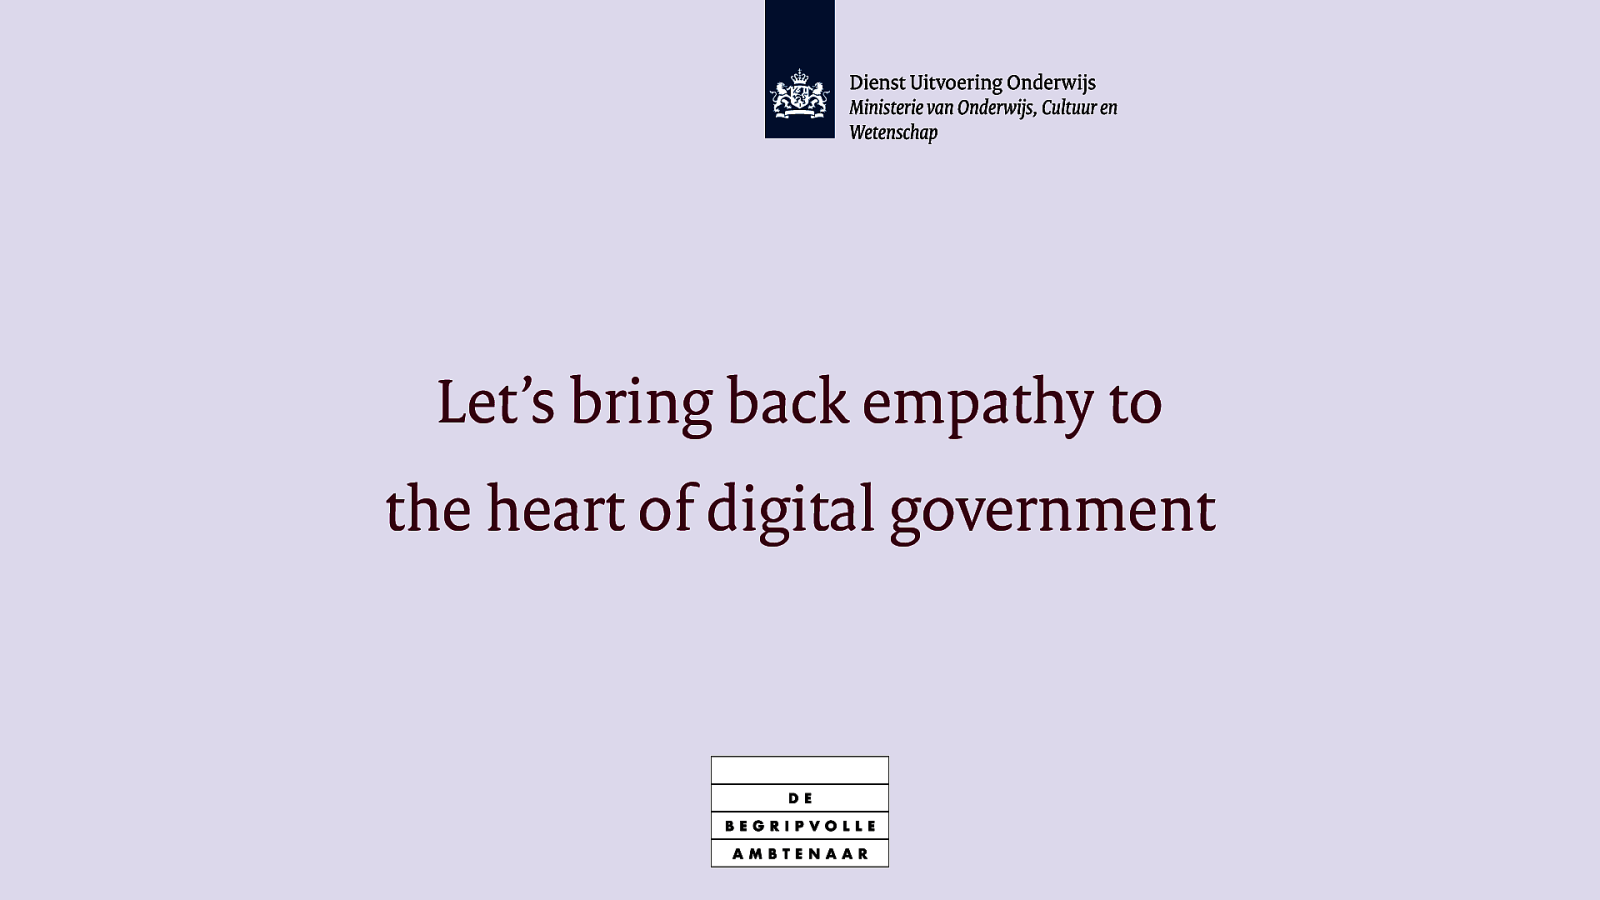 Let's bring back empathy to the heart of digital government.